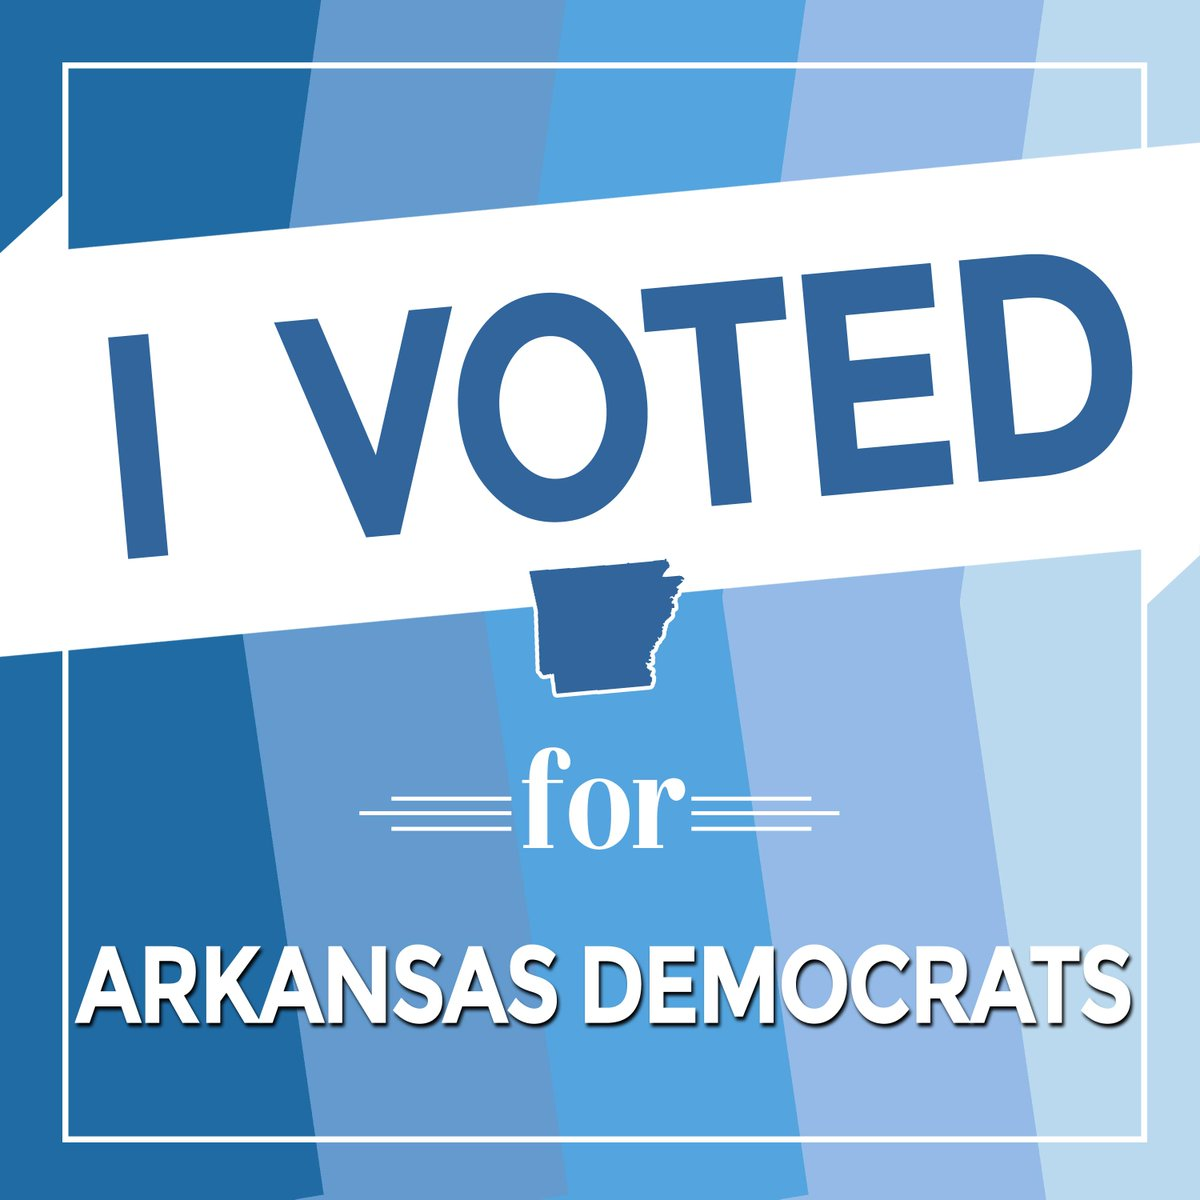 Polls are open! Vote now until 7:30 pm for @ArkDems and challenge 3 of your friends to do the same! #arpx http://t.co/UCm2I4hKuJ